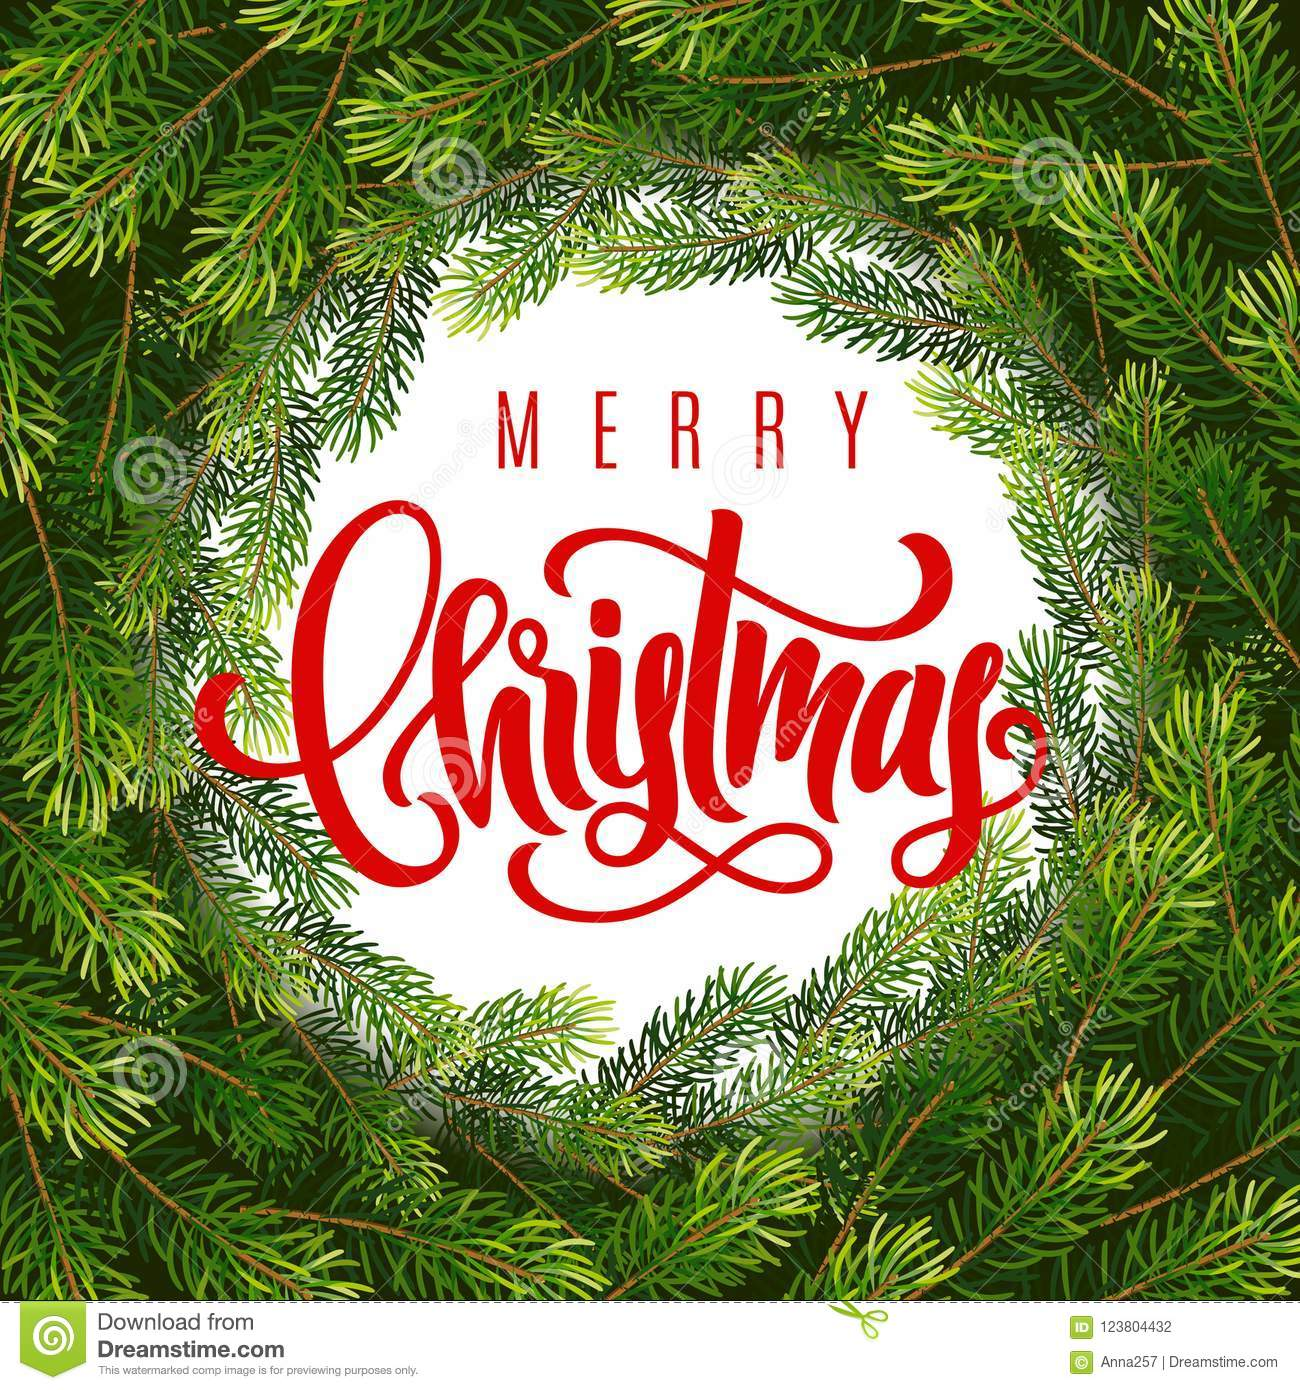 Christmas Gift Card Poster.Holiday Gift Card With Hand Lettering Merry Christmas And